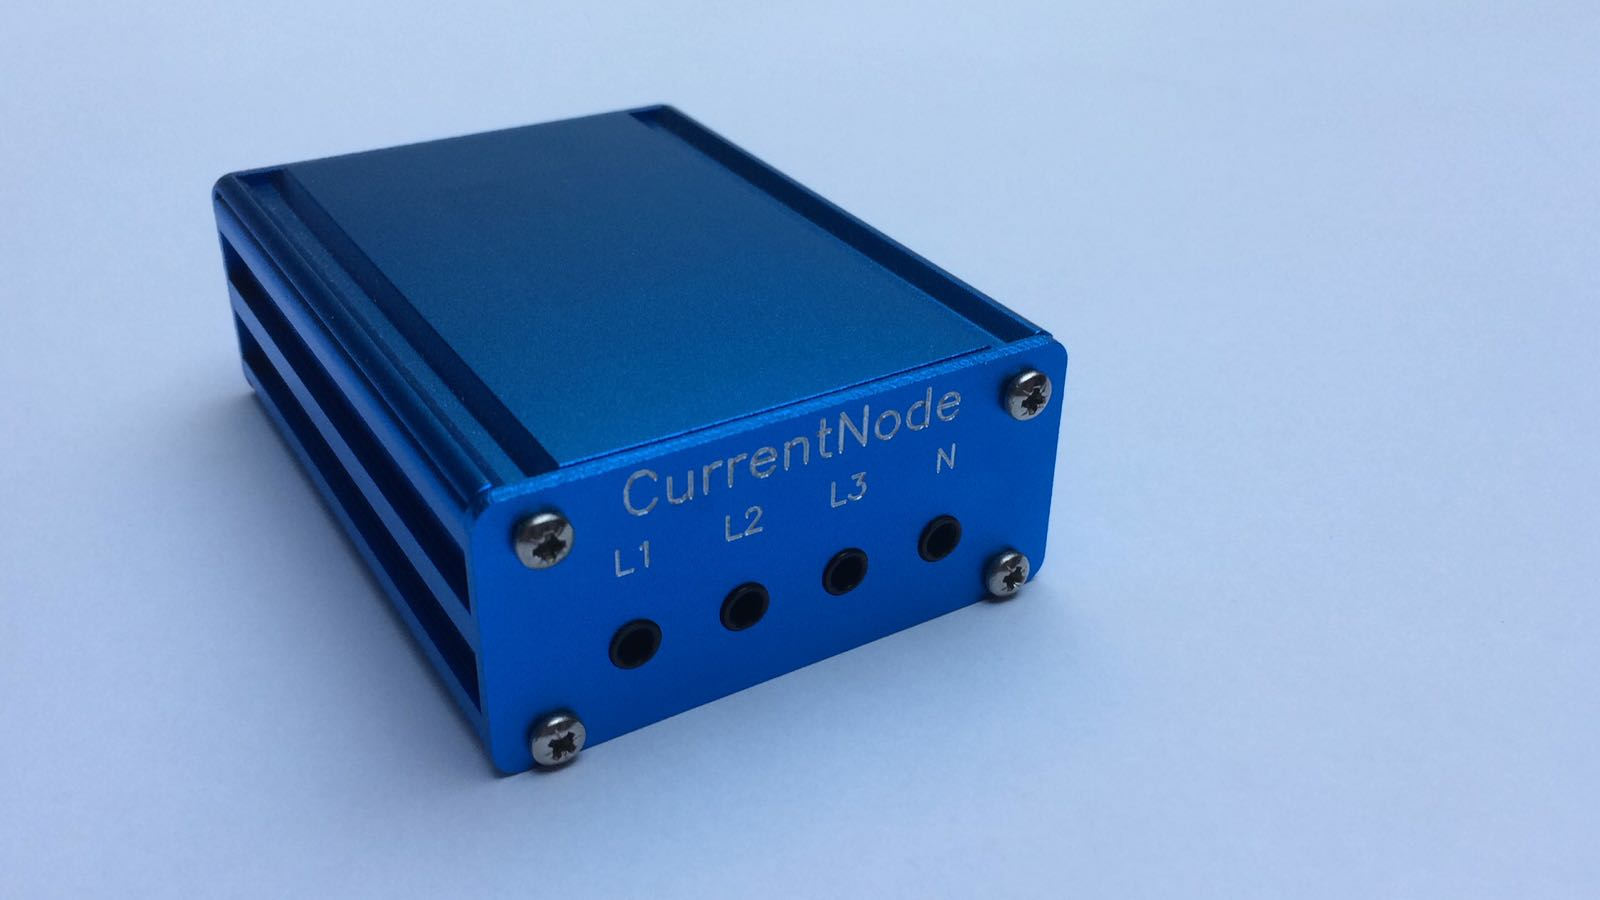 CurrentNode - Clamp inputs